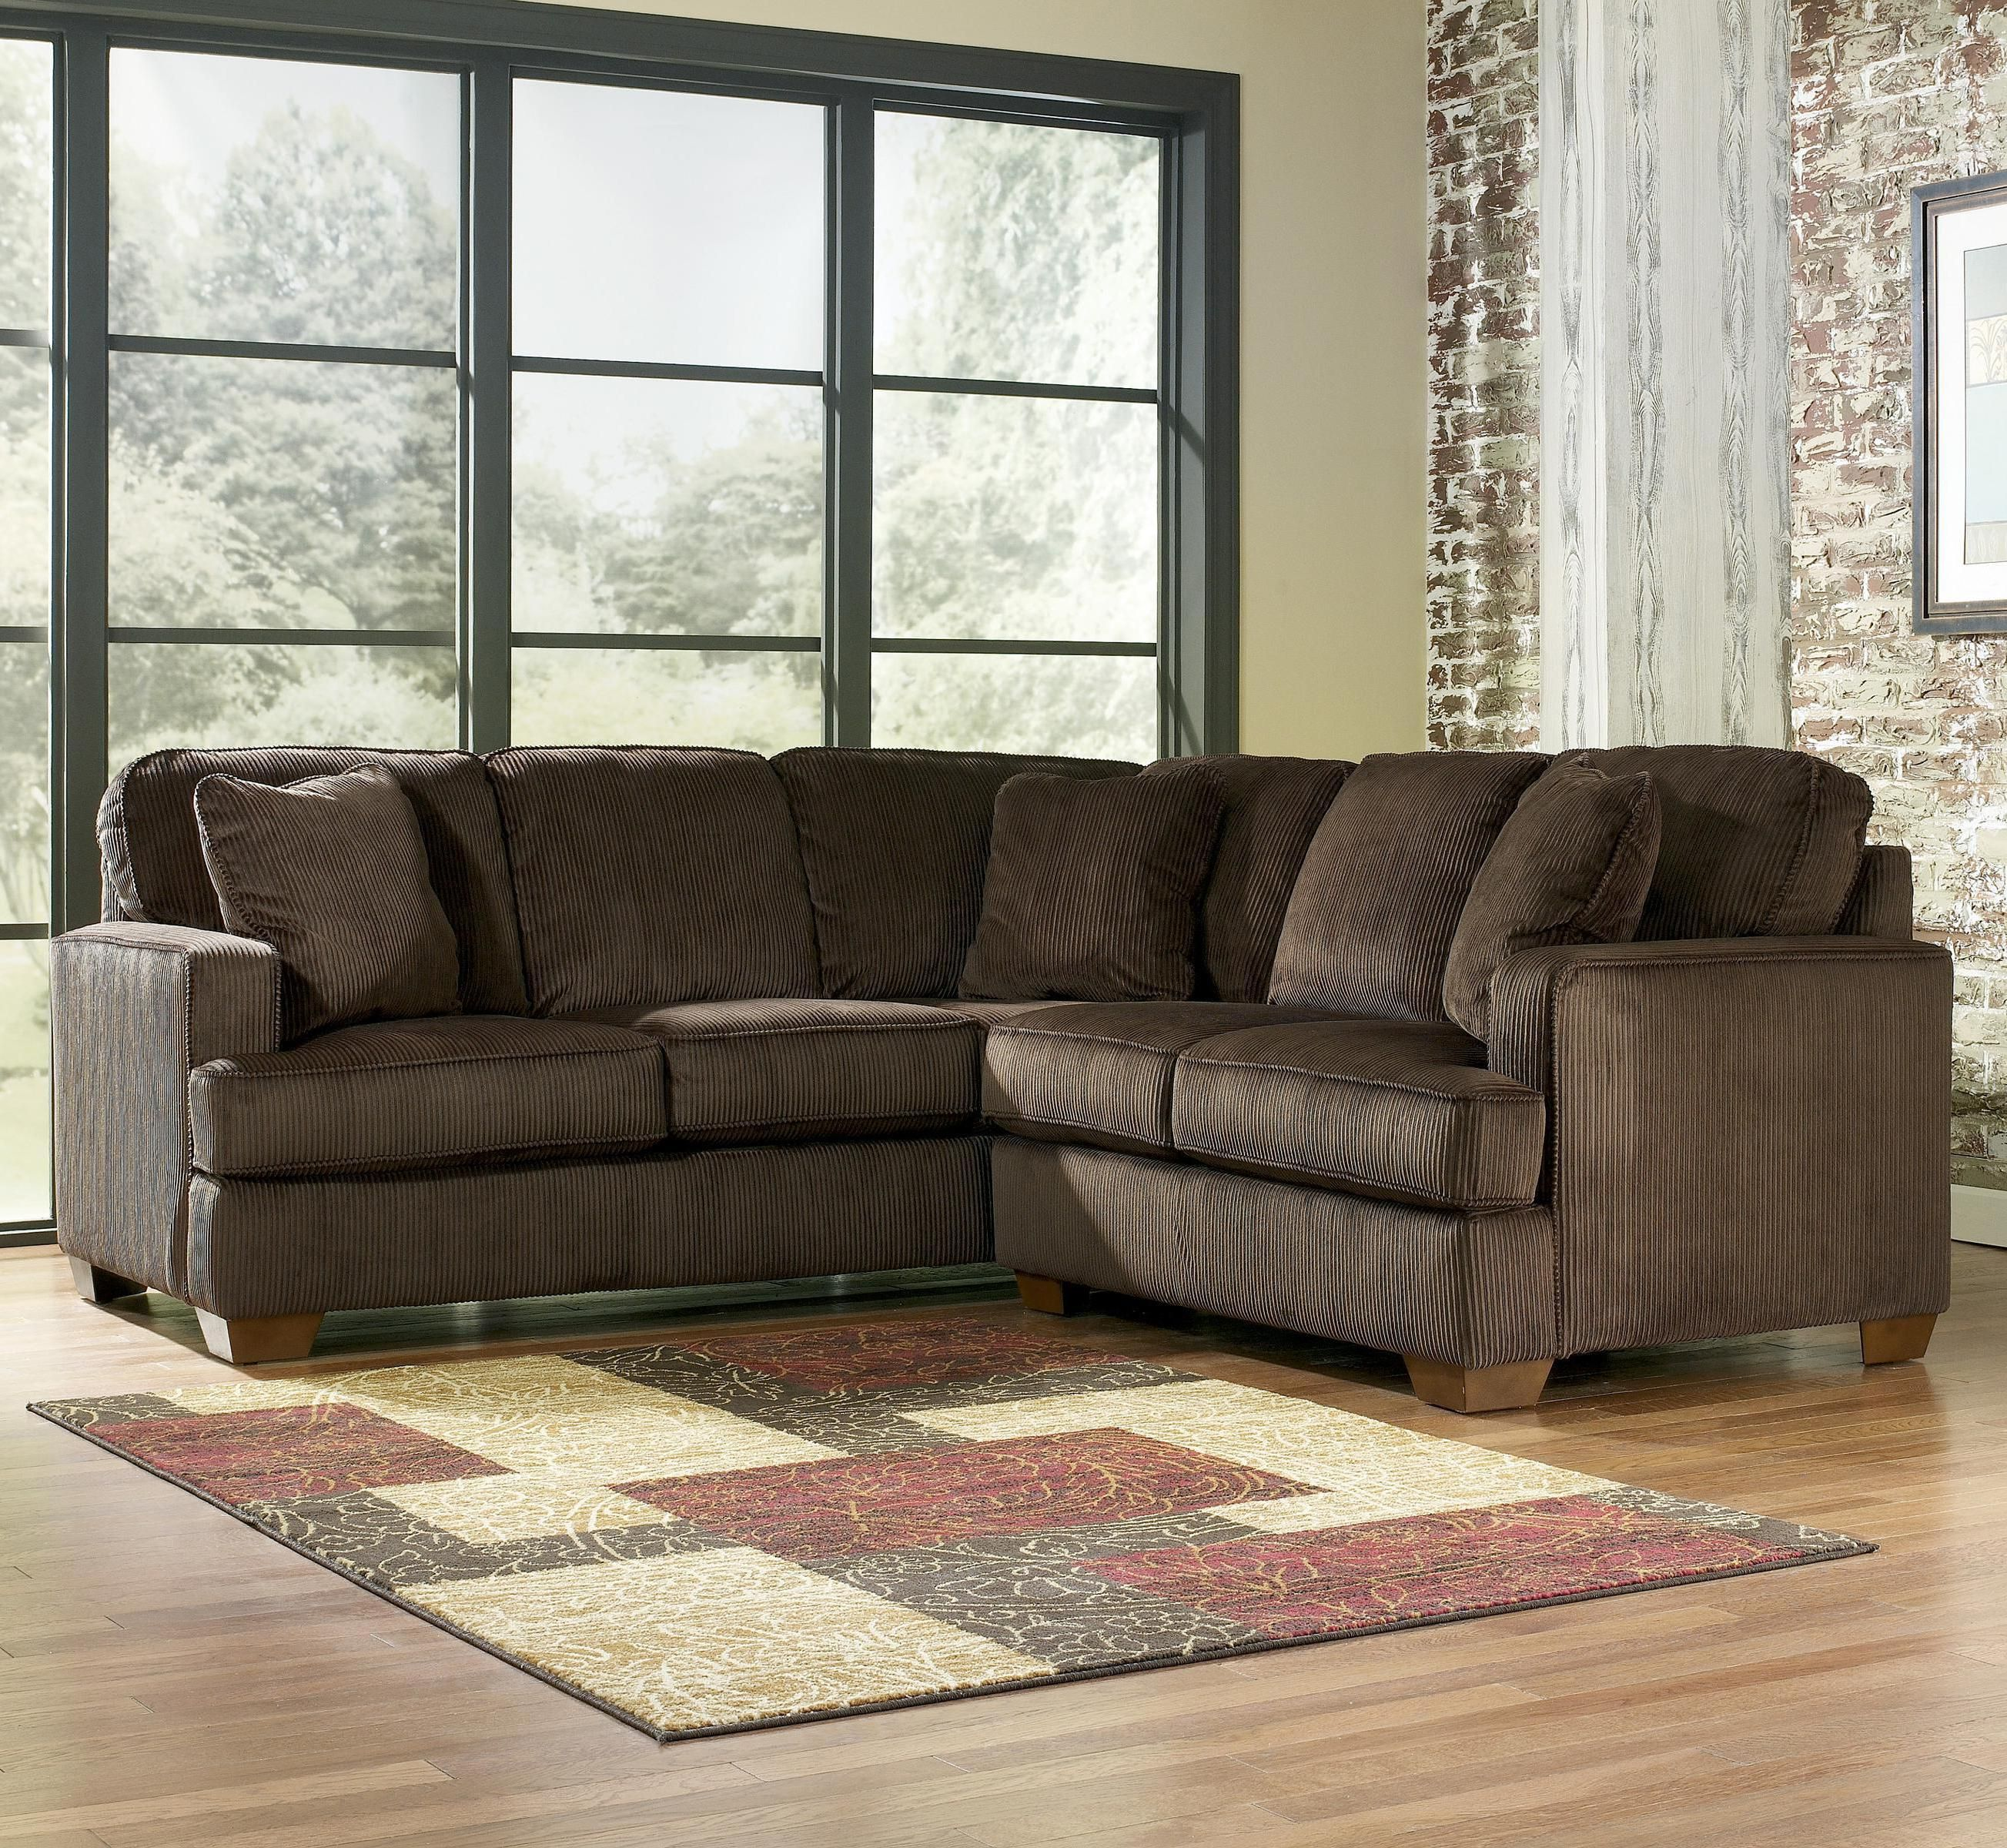 Atmore   Chocolate 2 Piece Sectional With Left Arm Facing Sofa By Signature  Design By